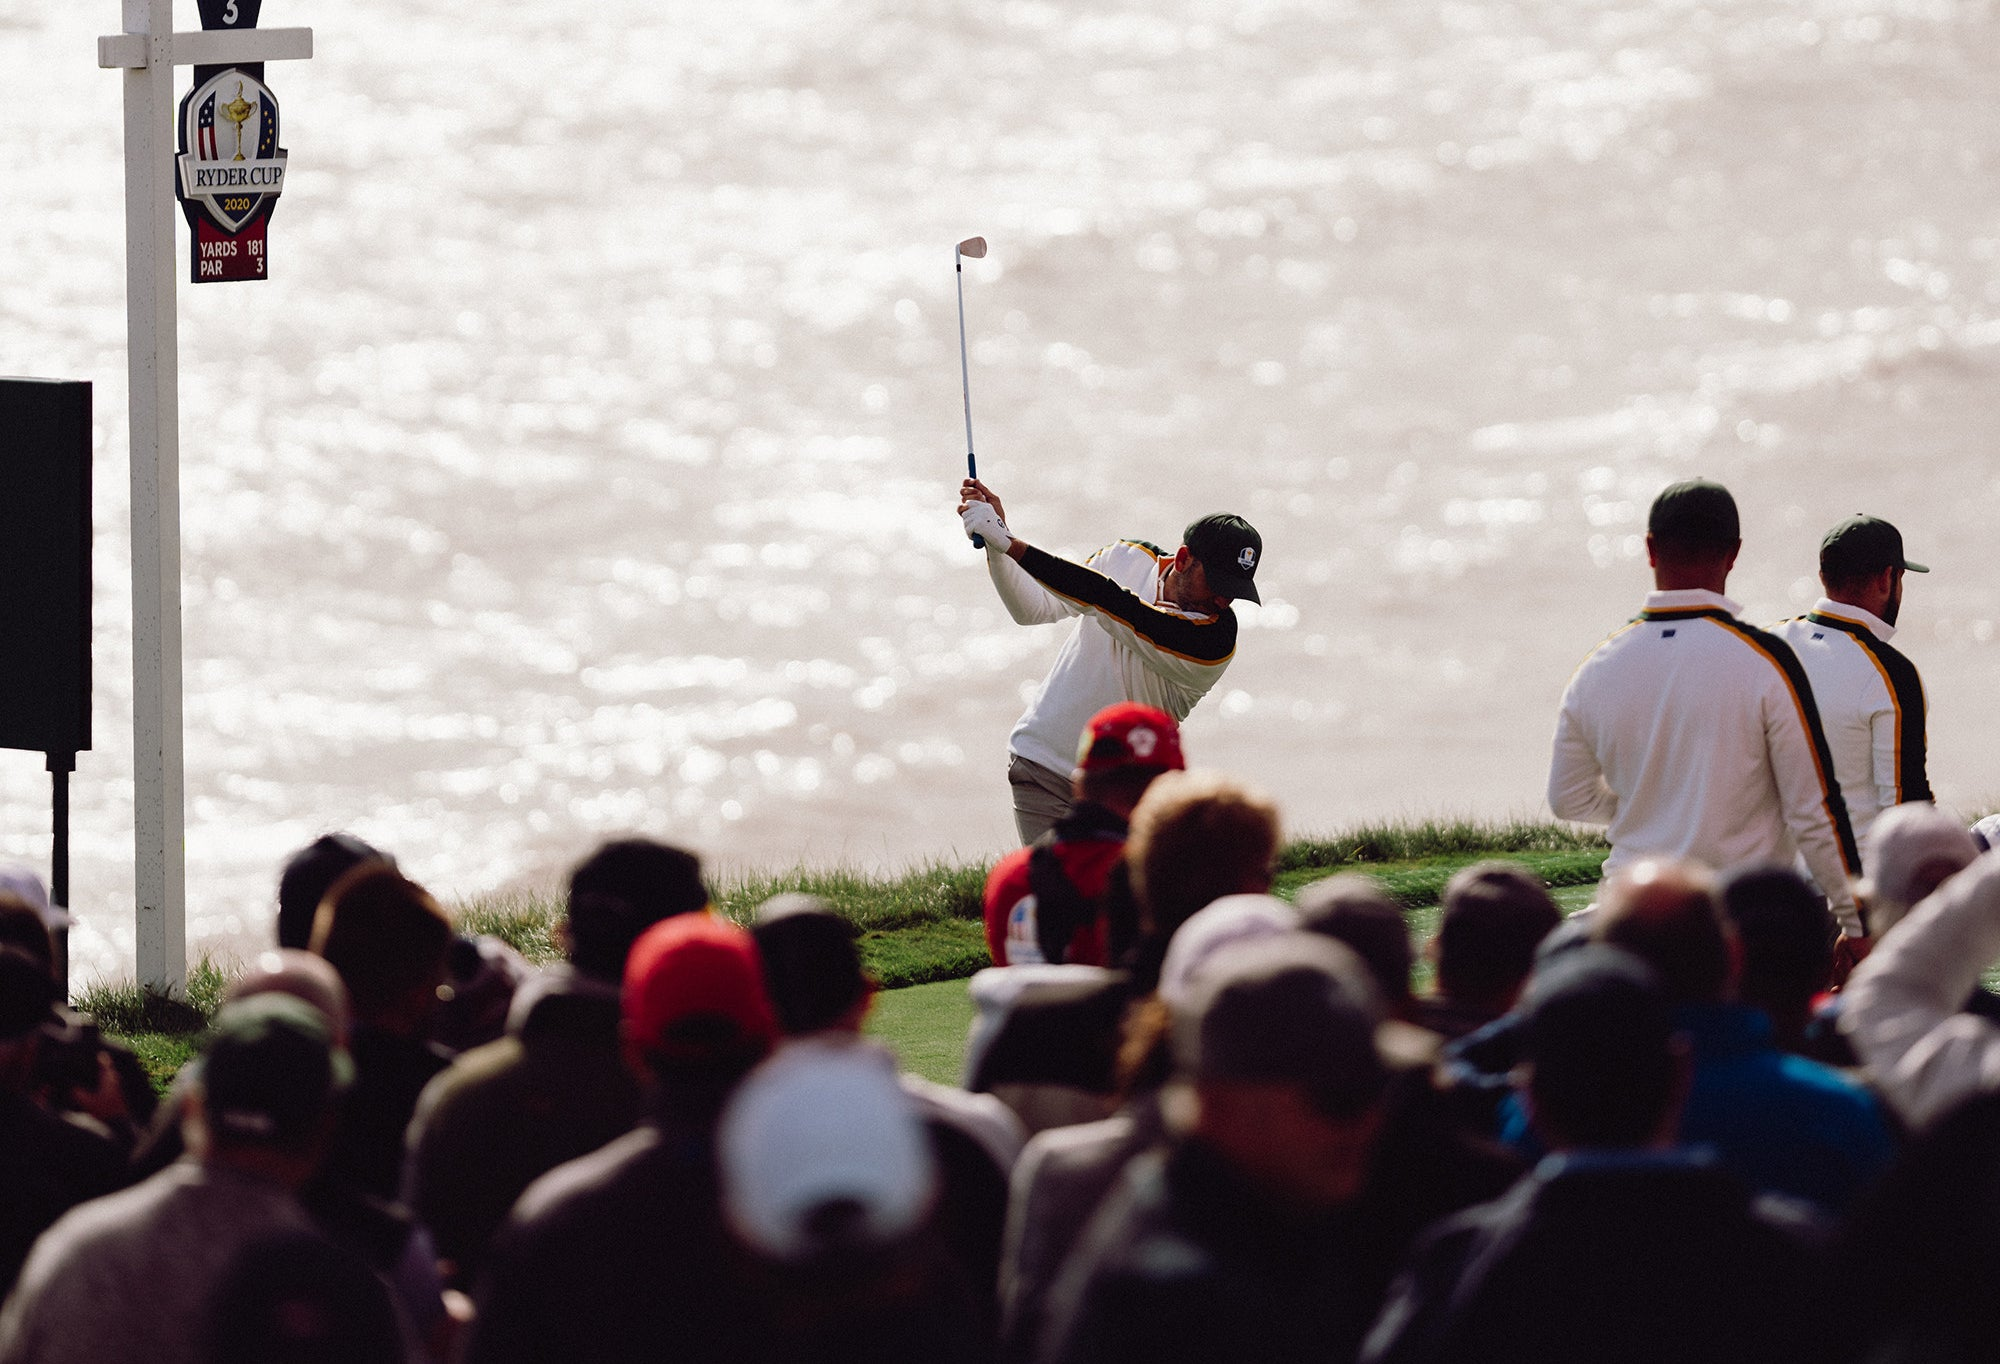 Person playing golf with crowd looking on